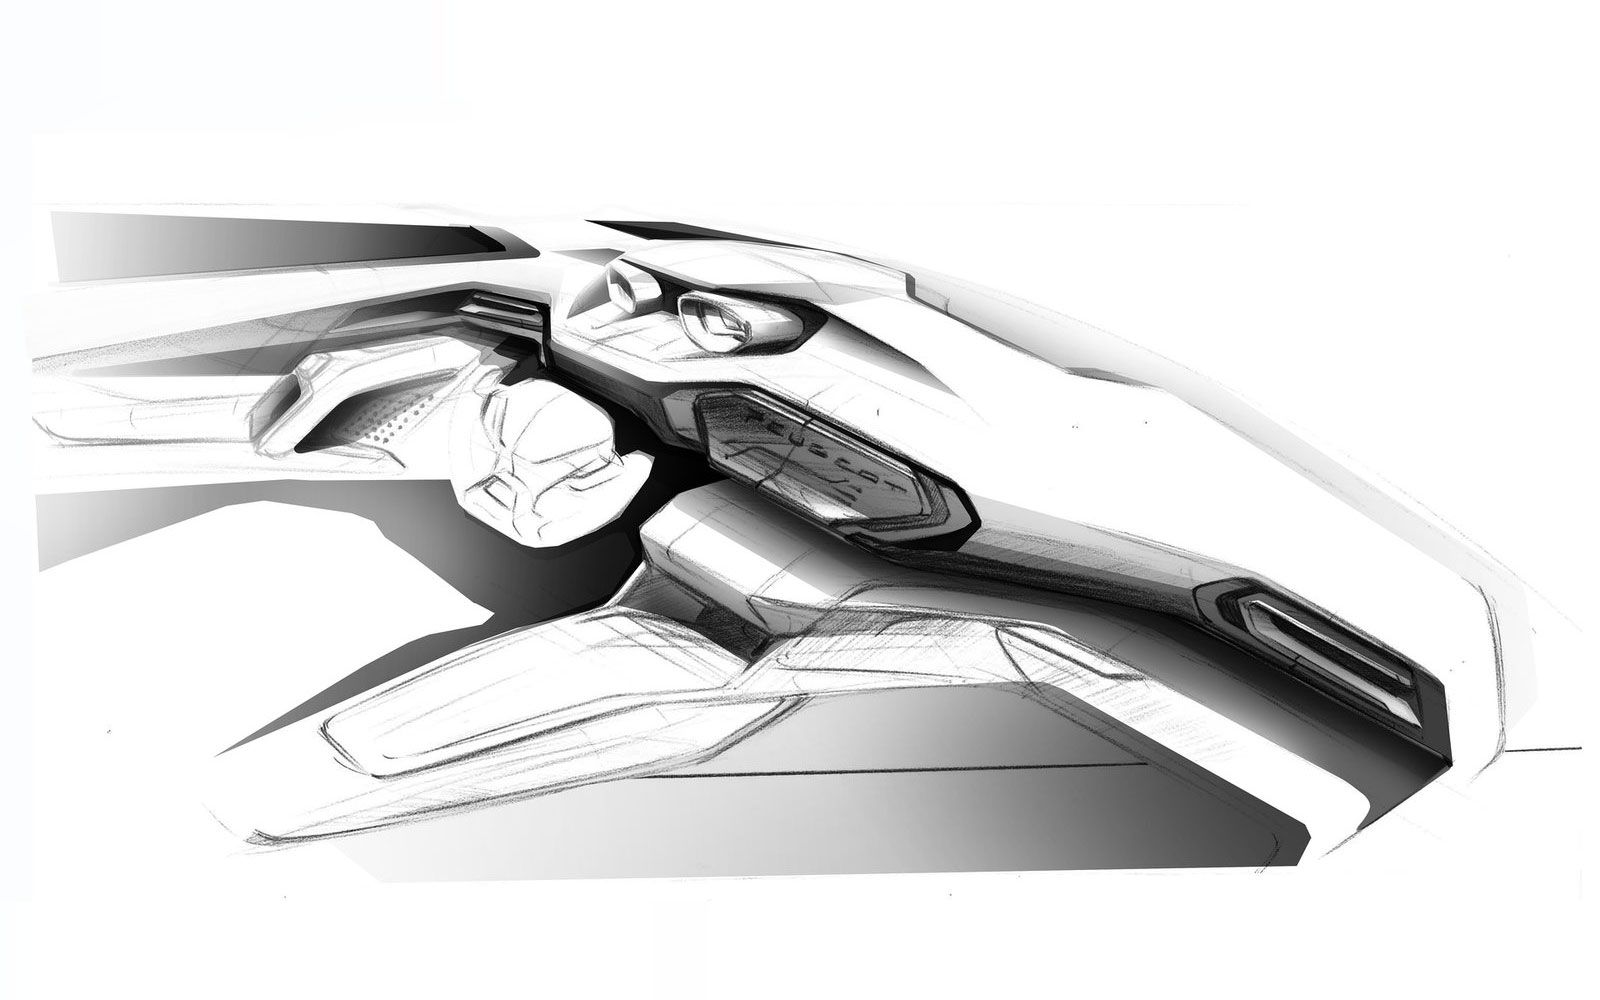 We wonder how long until new cars match the concept sketches that we all love? This is an early #peugeot308 interior concept sketch, amazing if you ask us!